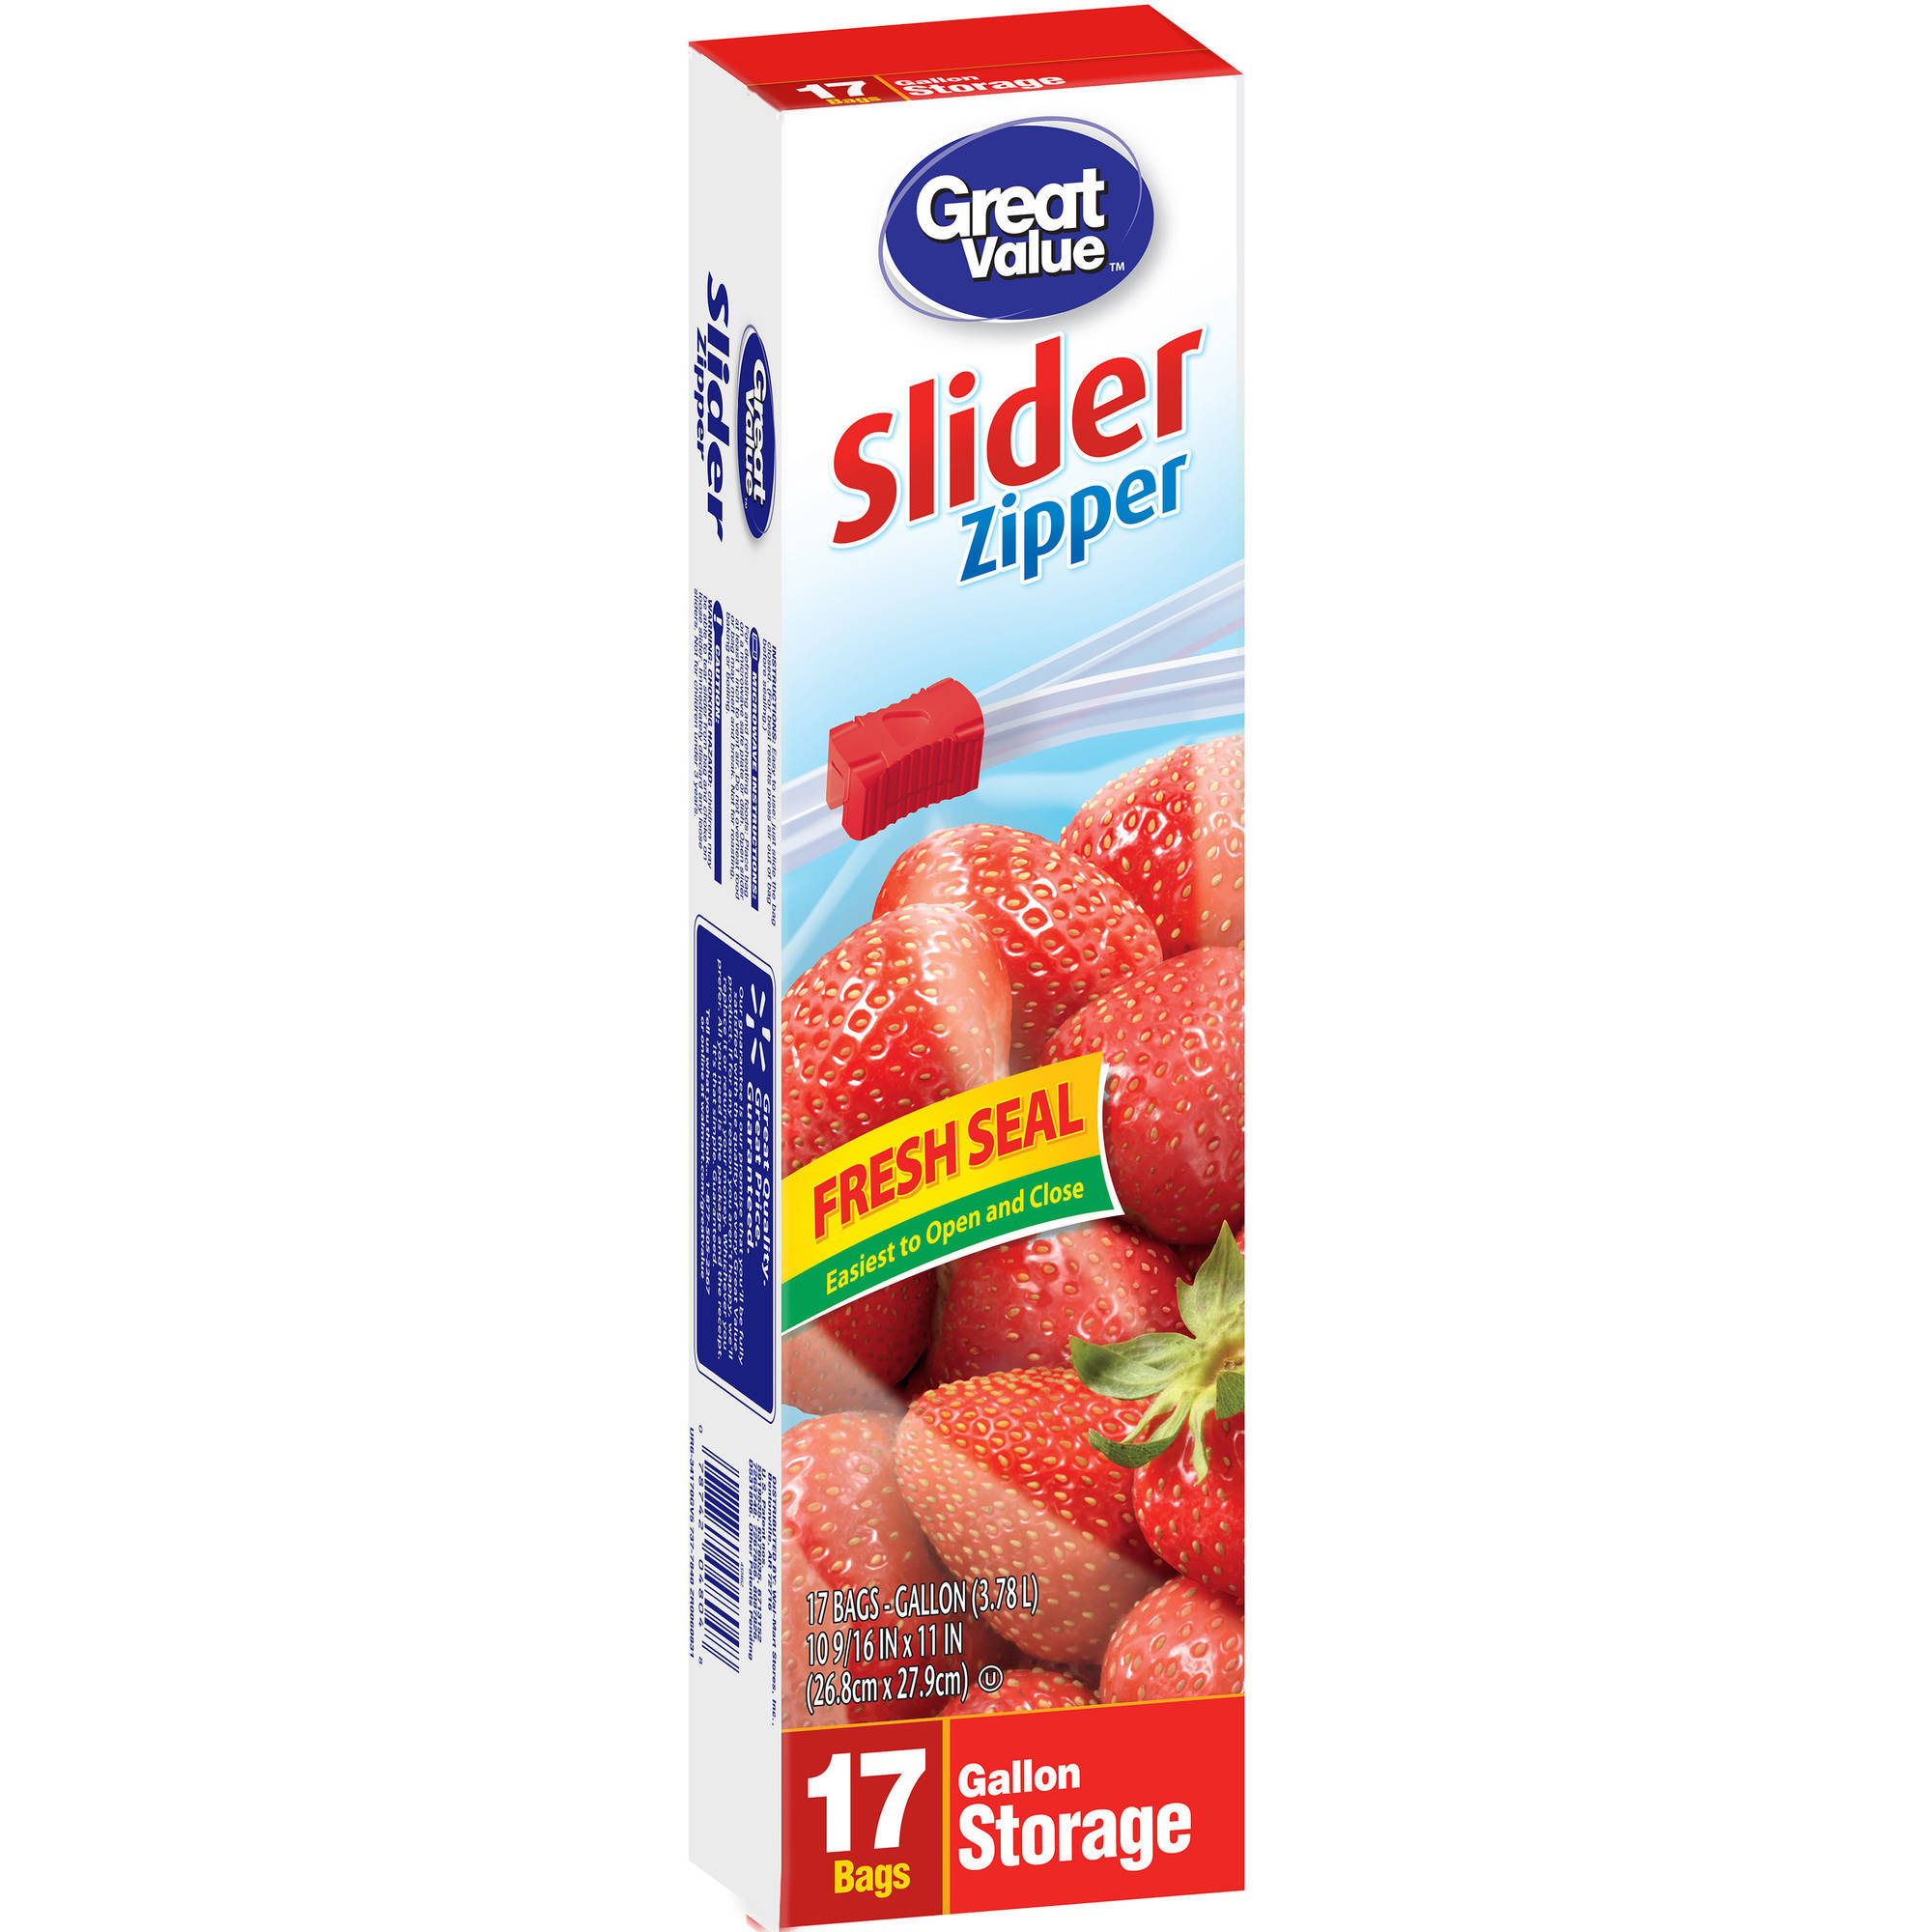 Great Value Storage Gallon Slider / Zipper Food Bags, 17 count